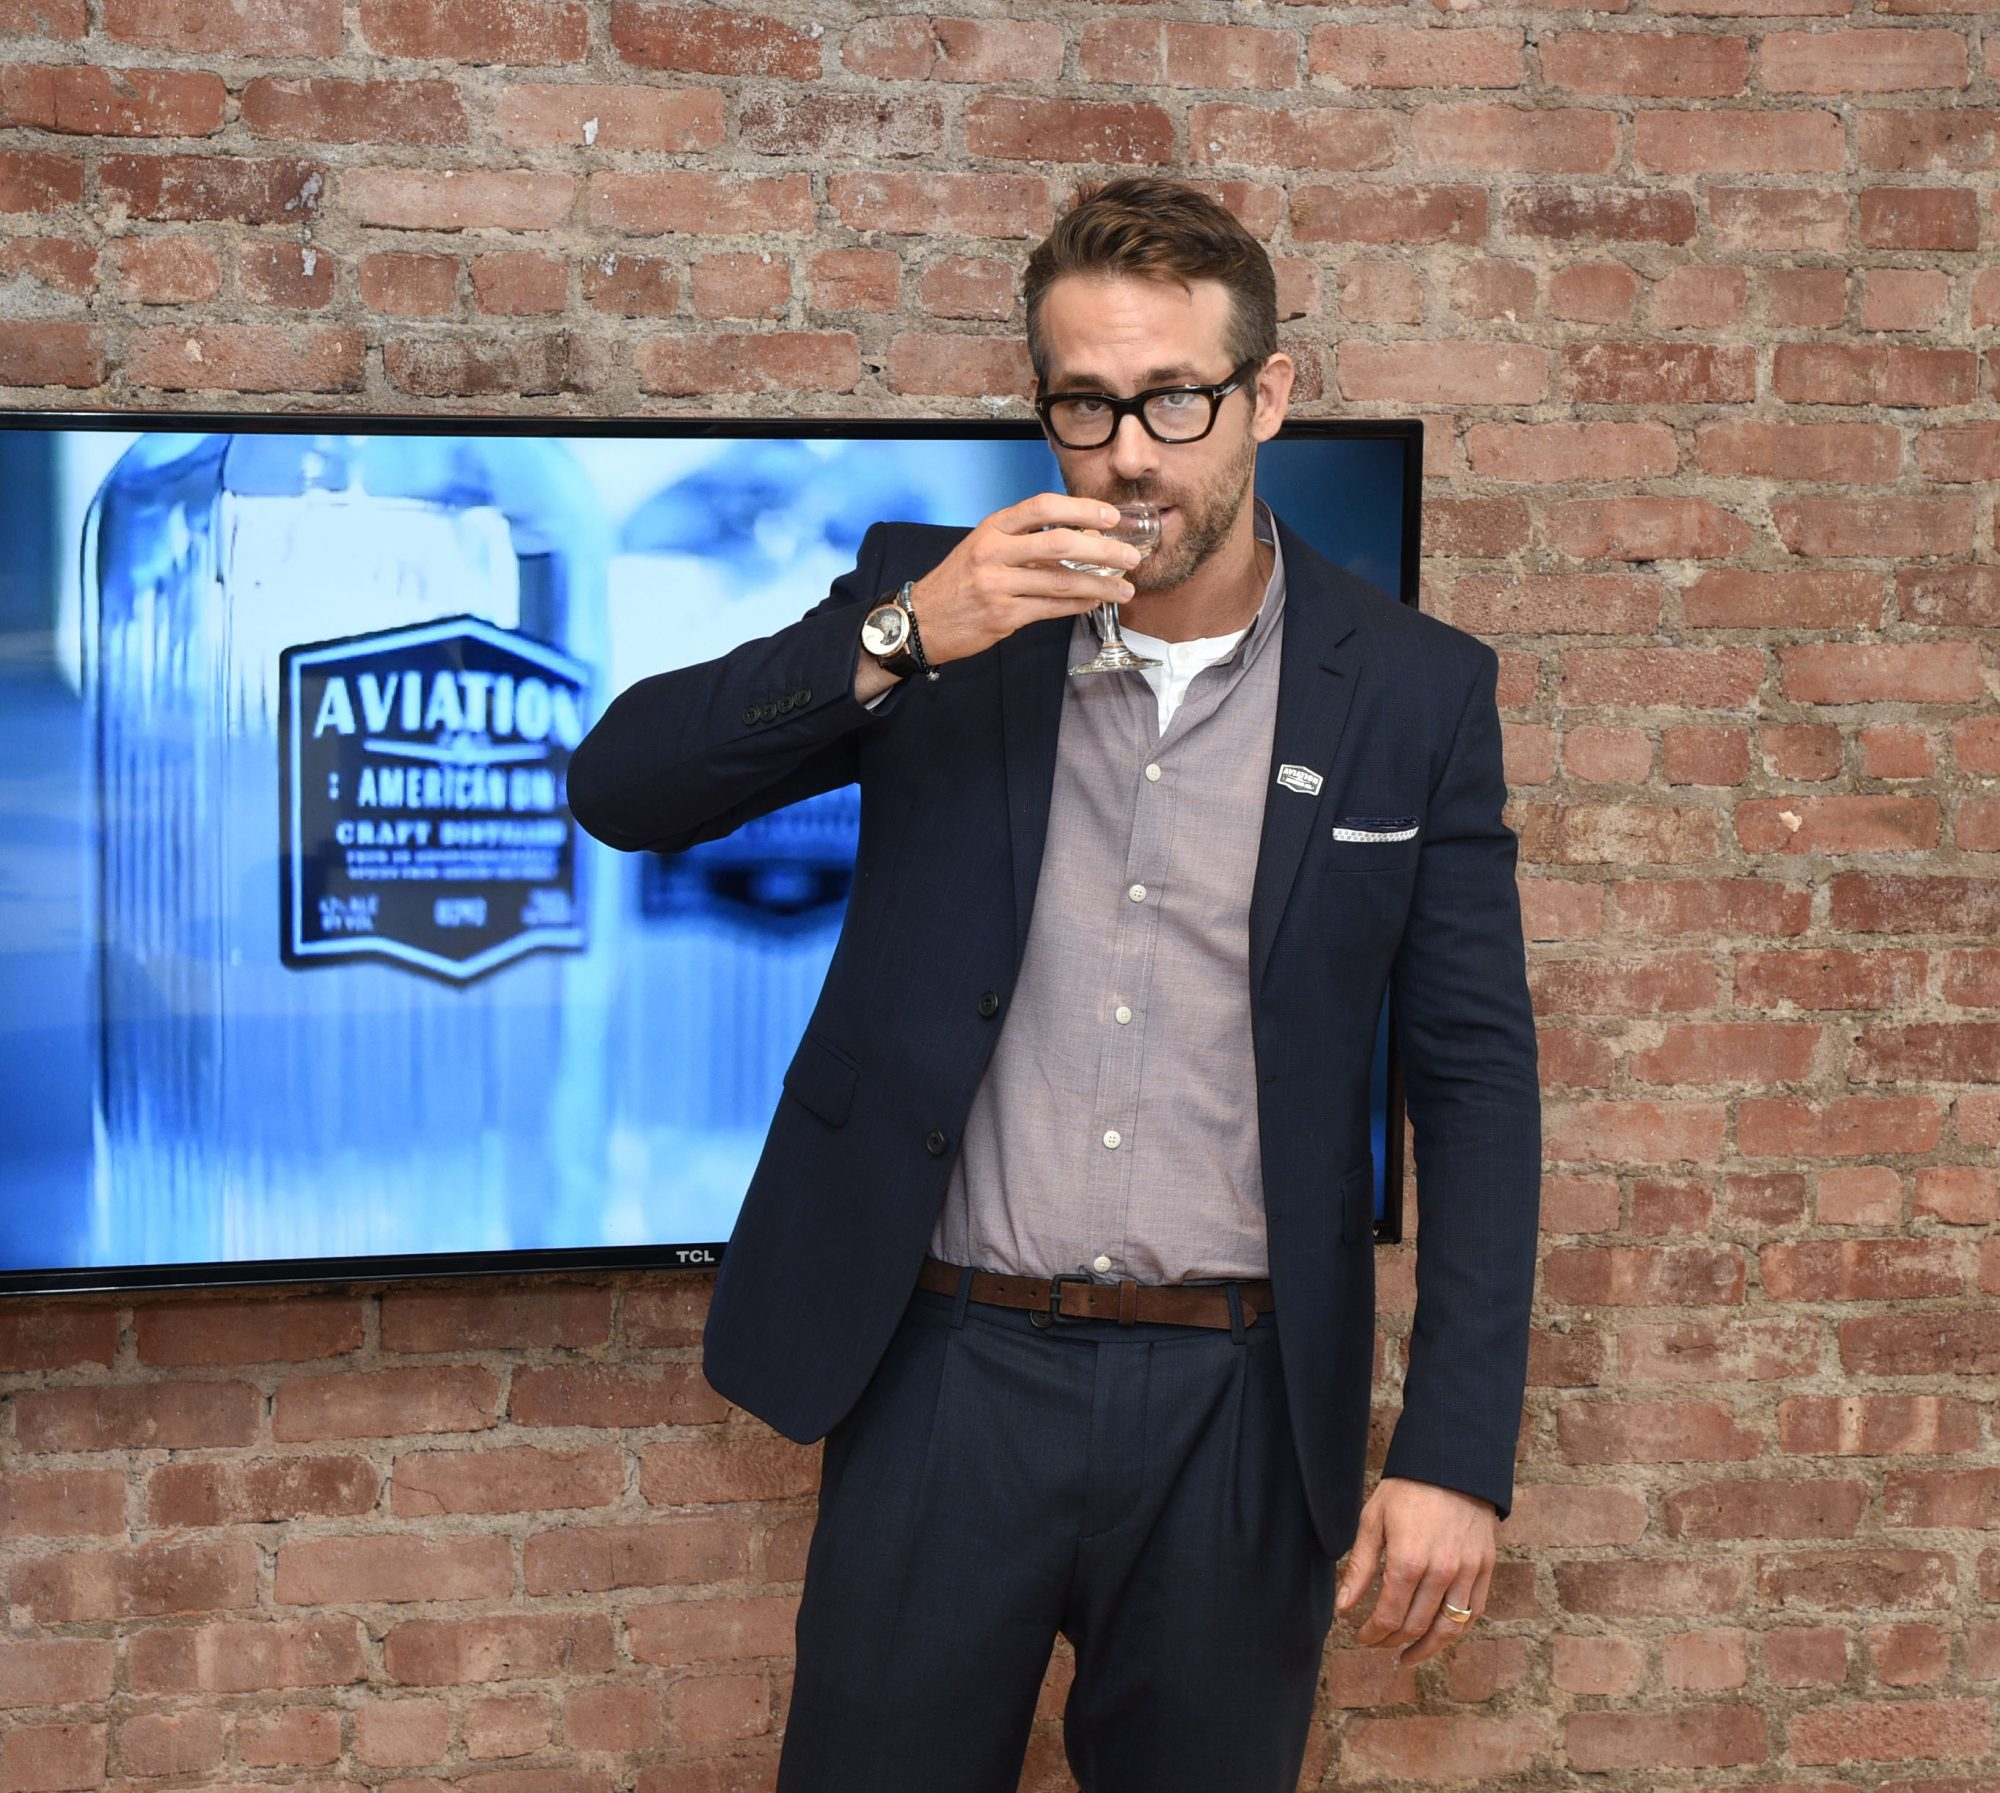 Ryan Reynolds Explains Why He Wanted to Buy Aviation Gin